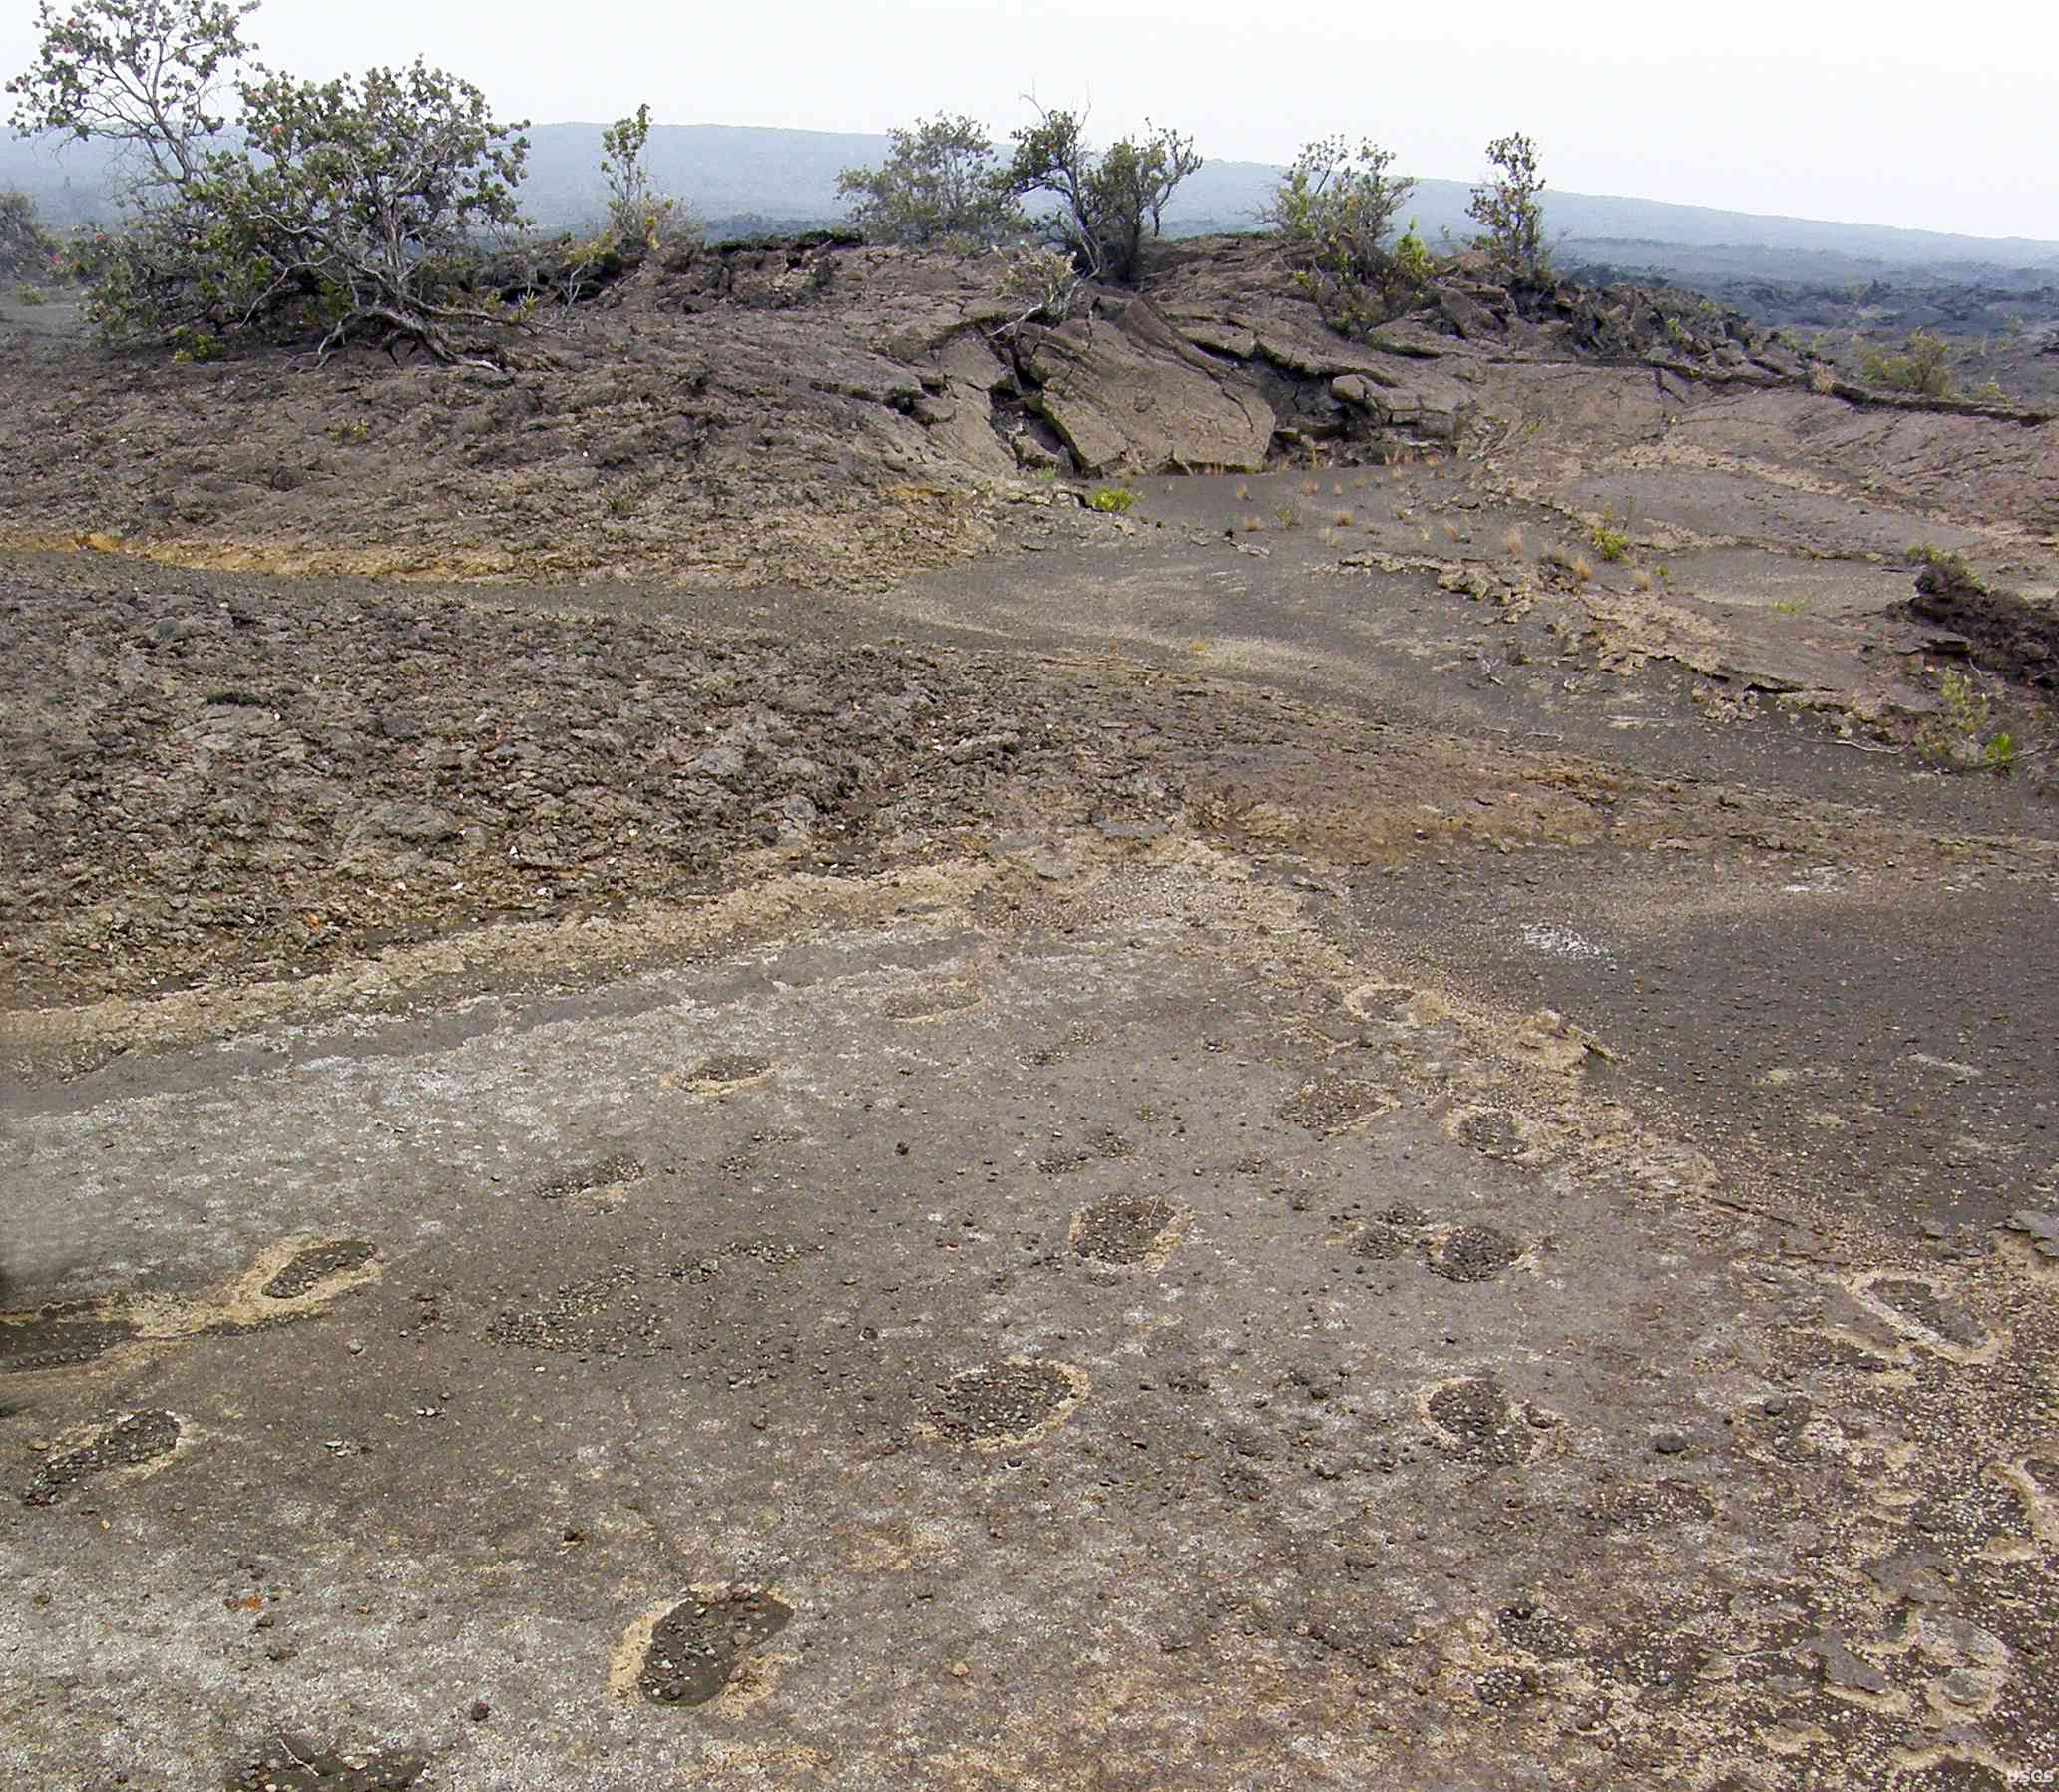 Footprints in the volcanic ash in Volcanoes National Park